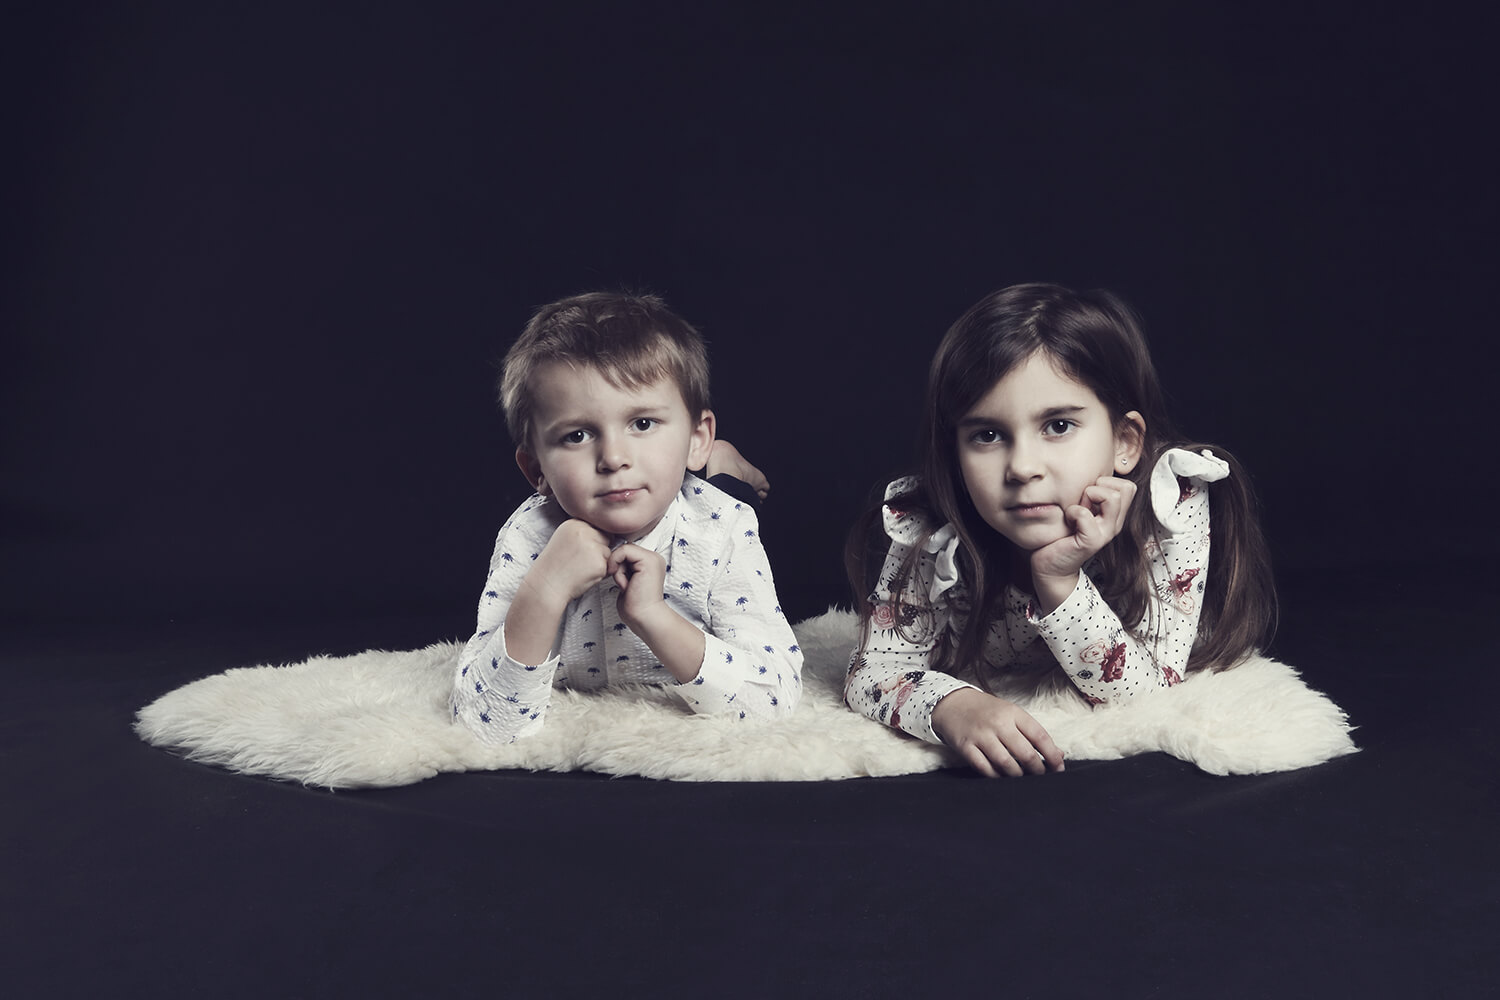 family photo of siblings lying on their bellies on a dark background